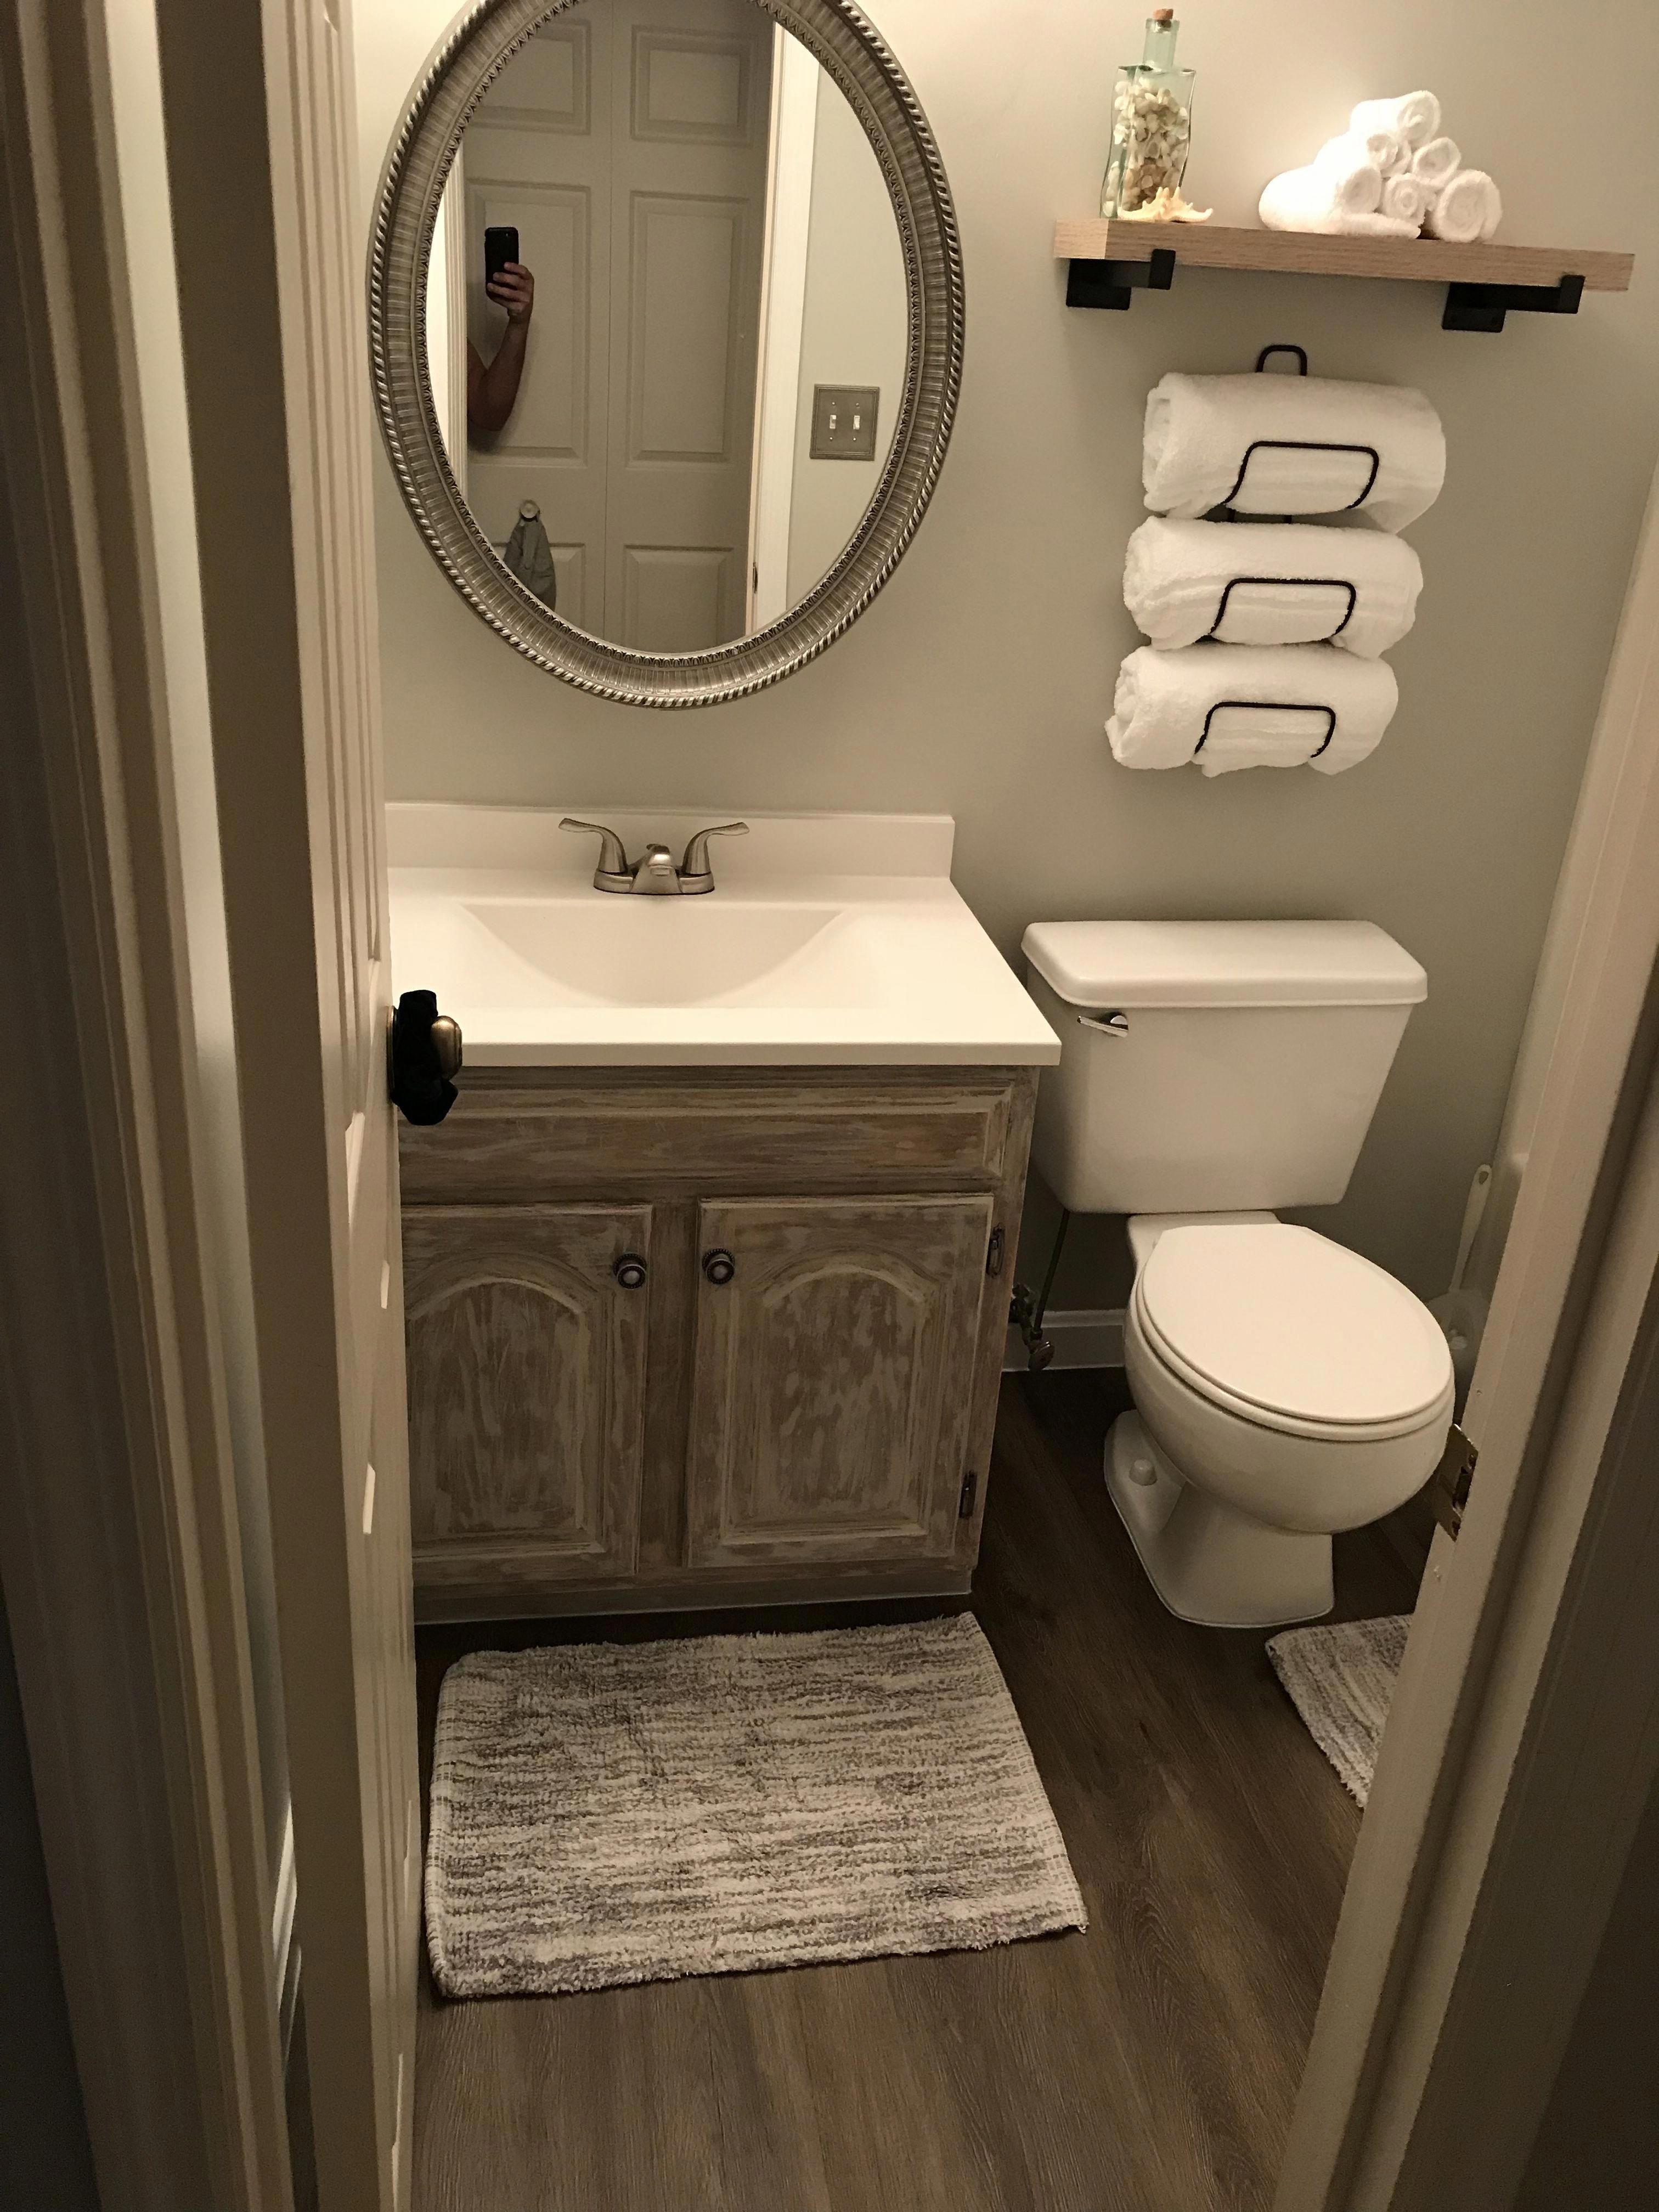 How Much Does A Bathroom Renovation Cost Bathroom Makeover Office Bathroom Design Bathrooms Remodel